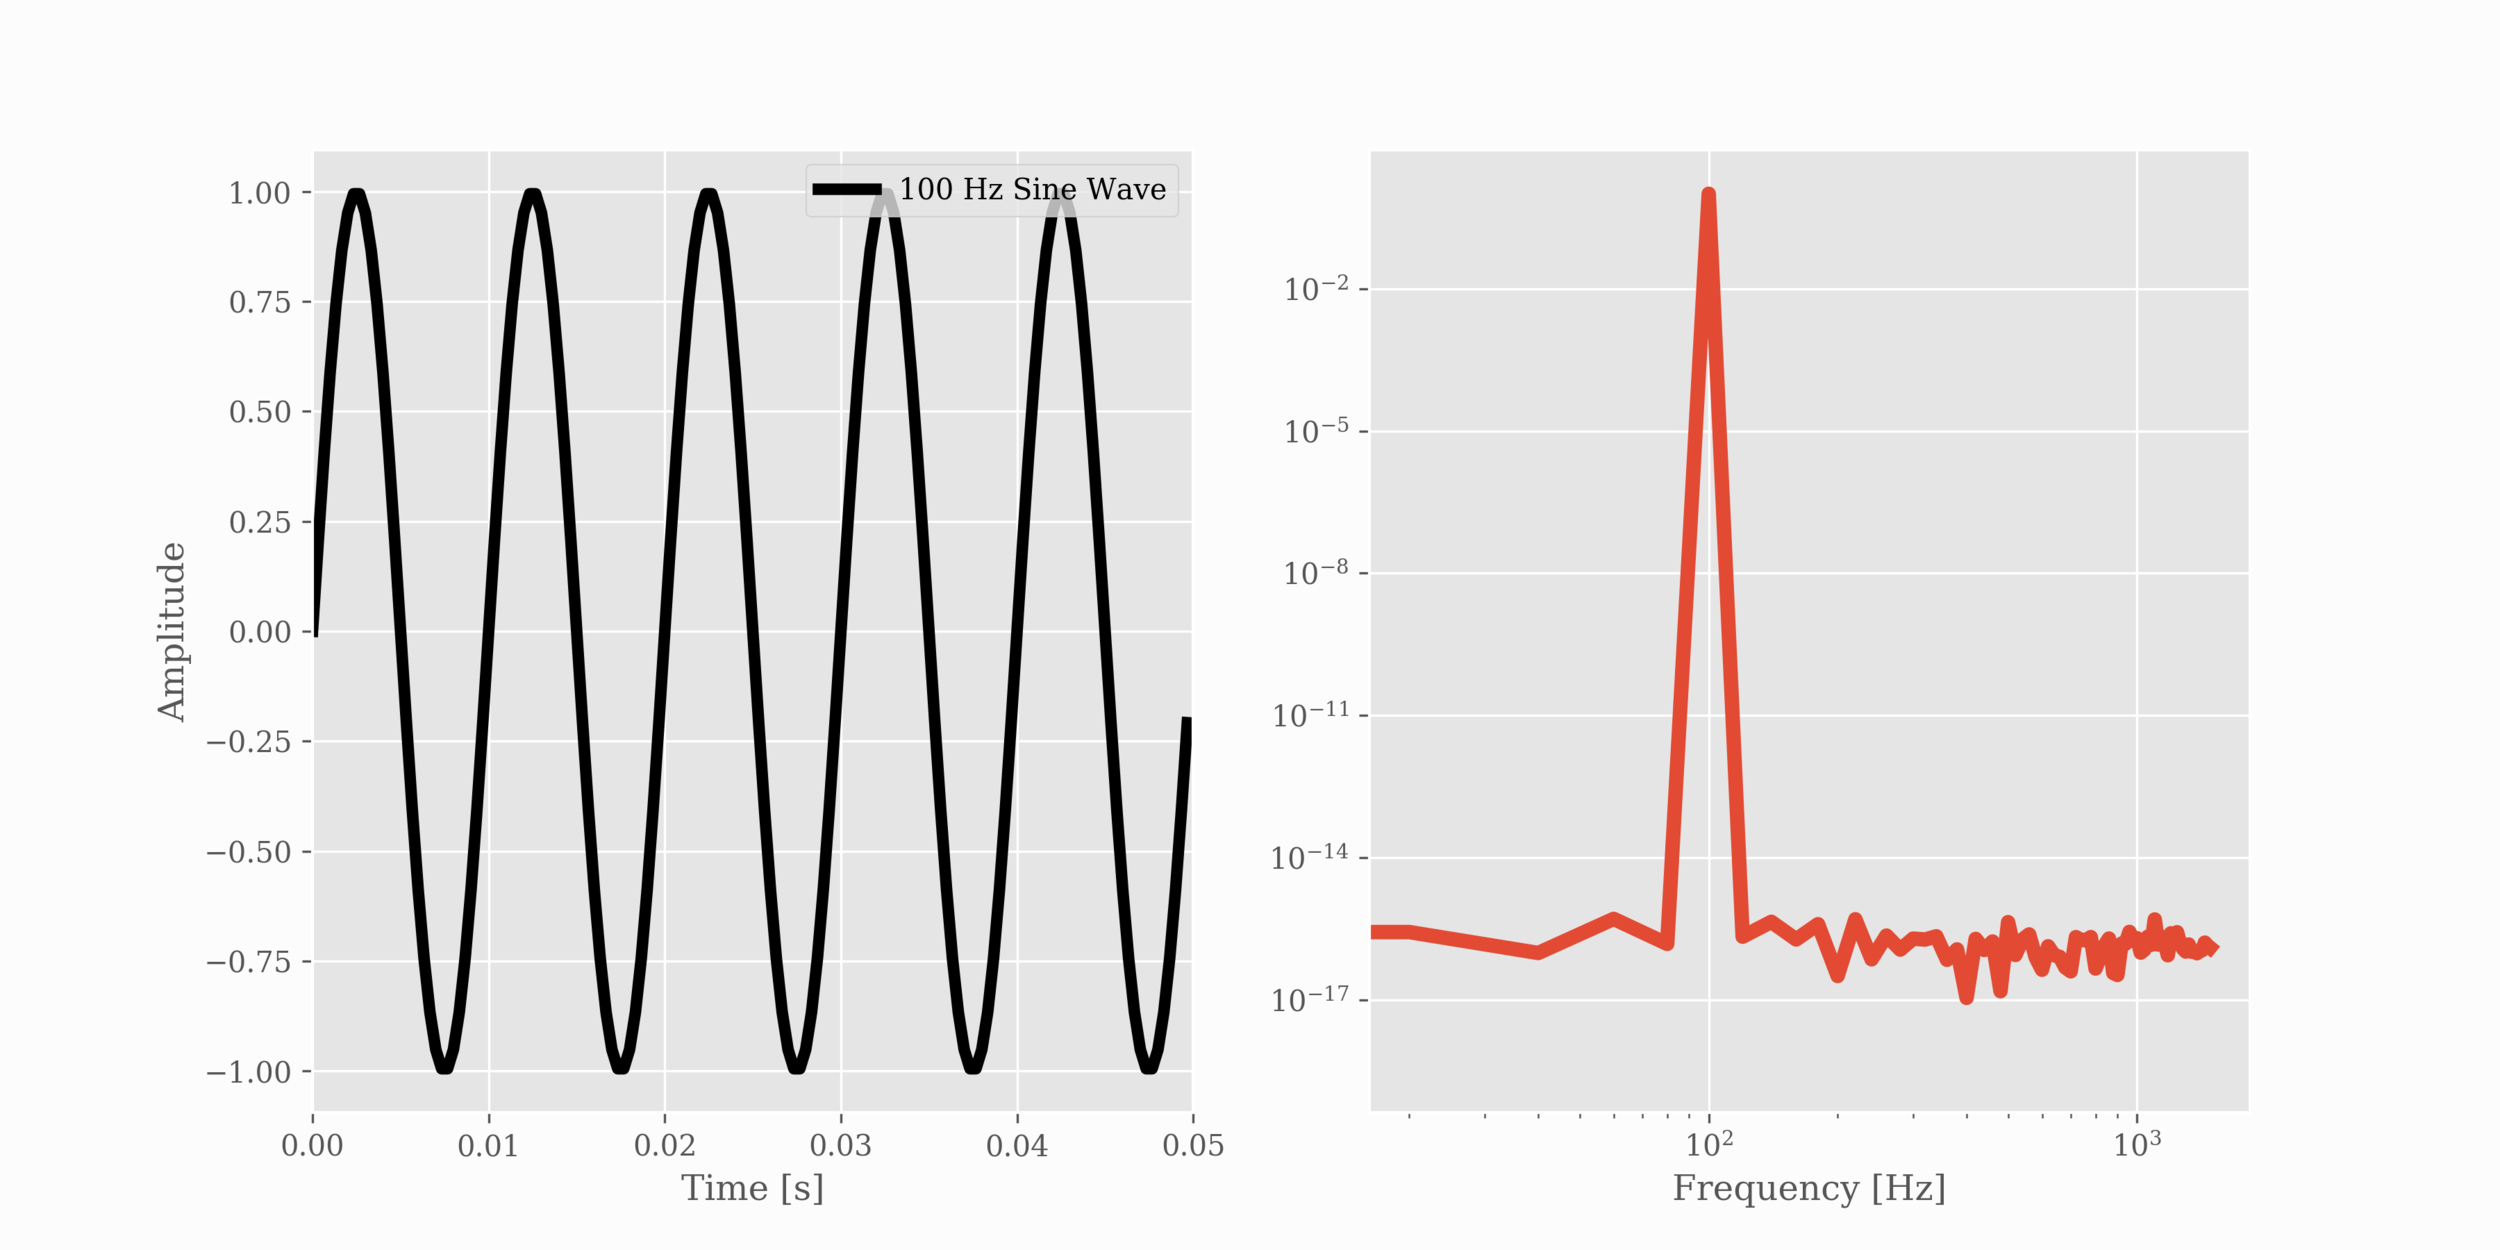 Figure 2:  Window of a 100 Hz sine wave for five cycles (on the left: time series, on the right: frequency spectrum). In this figure, the Fourier spectrum doesn't have trouble resolving the 100 Hz peak - five cycles is often enough to resolve the signal (assuming high signal amplitude compared to noise). In high-noise cases, longer periods may be necessary.